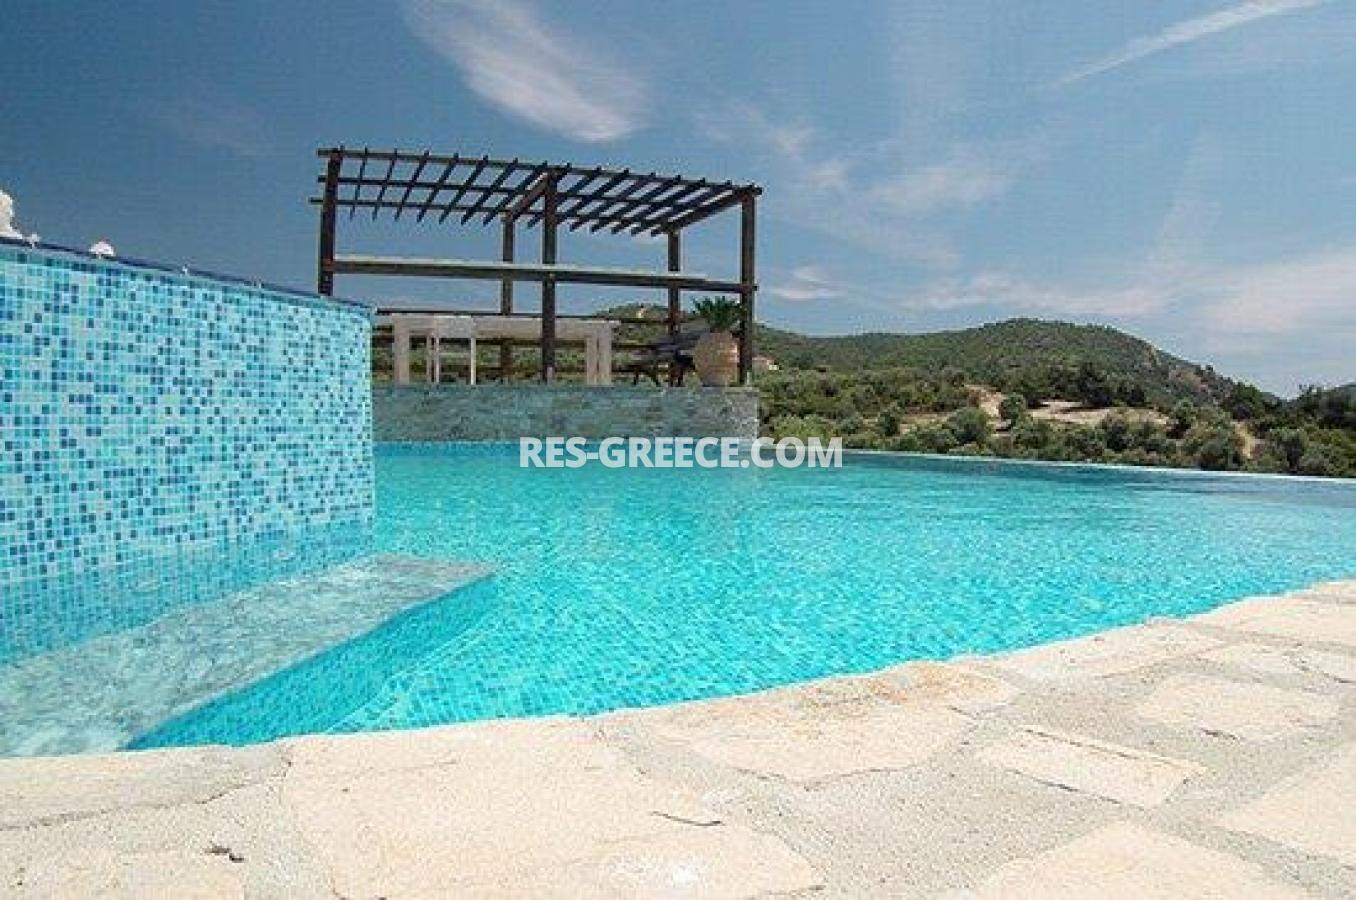 Villa MM, Northern Aegean Islands, Greece - 2 luxury properties in a gated complex with private beach - Photo 16